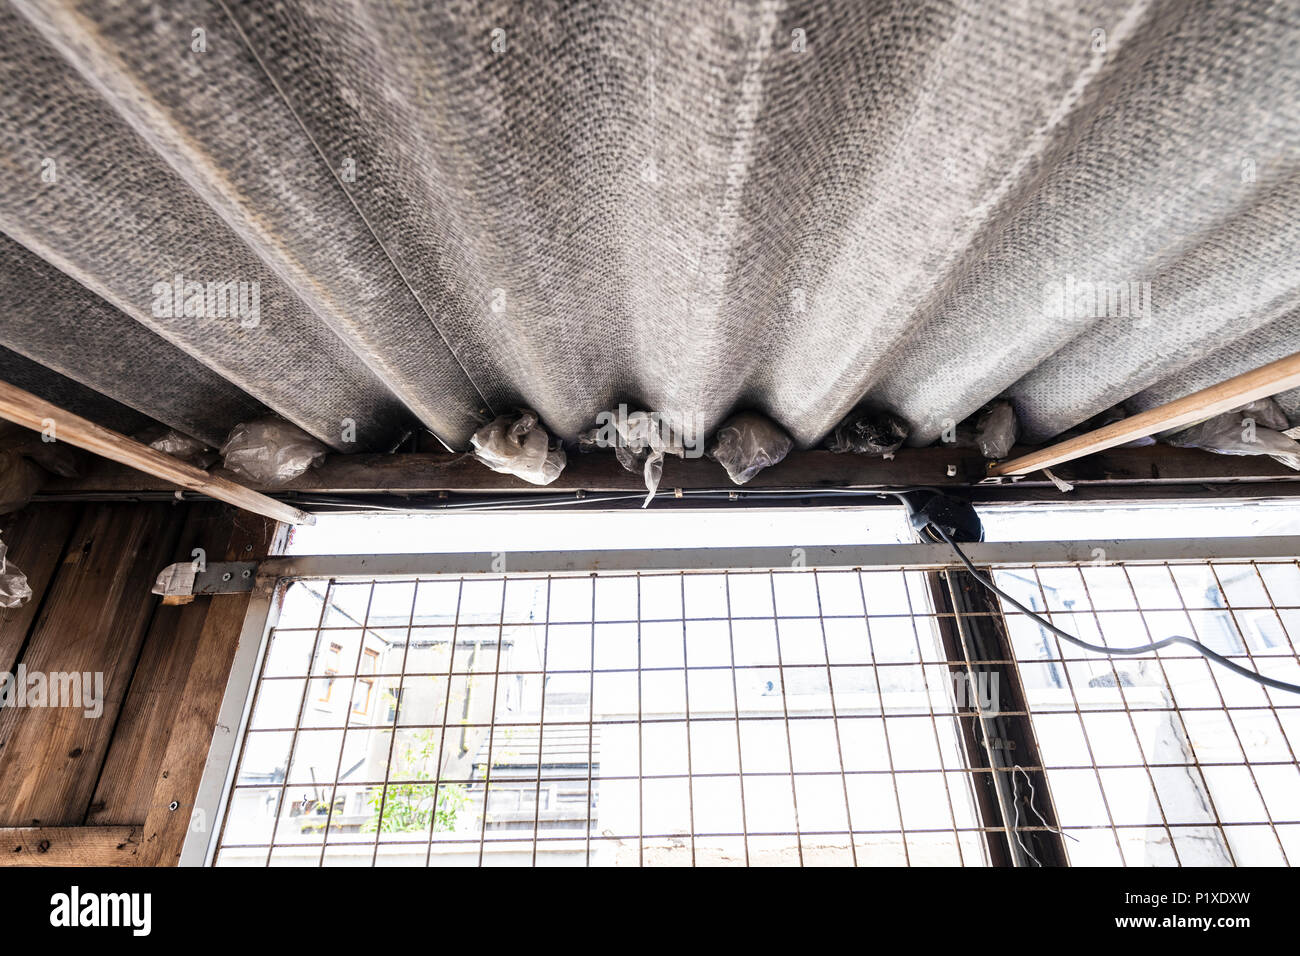 Old corrugated asbestos roof in an old shed - Stock Image